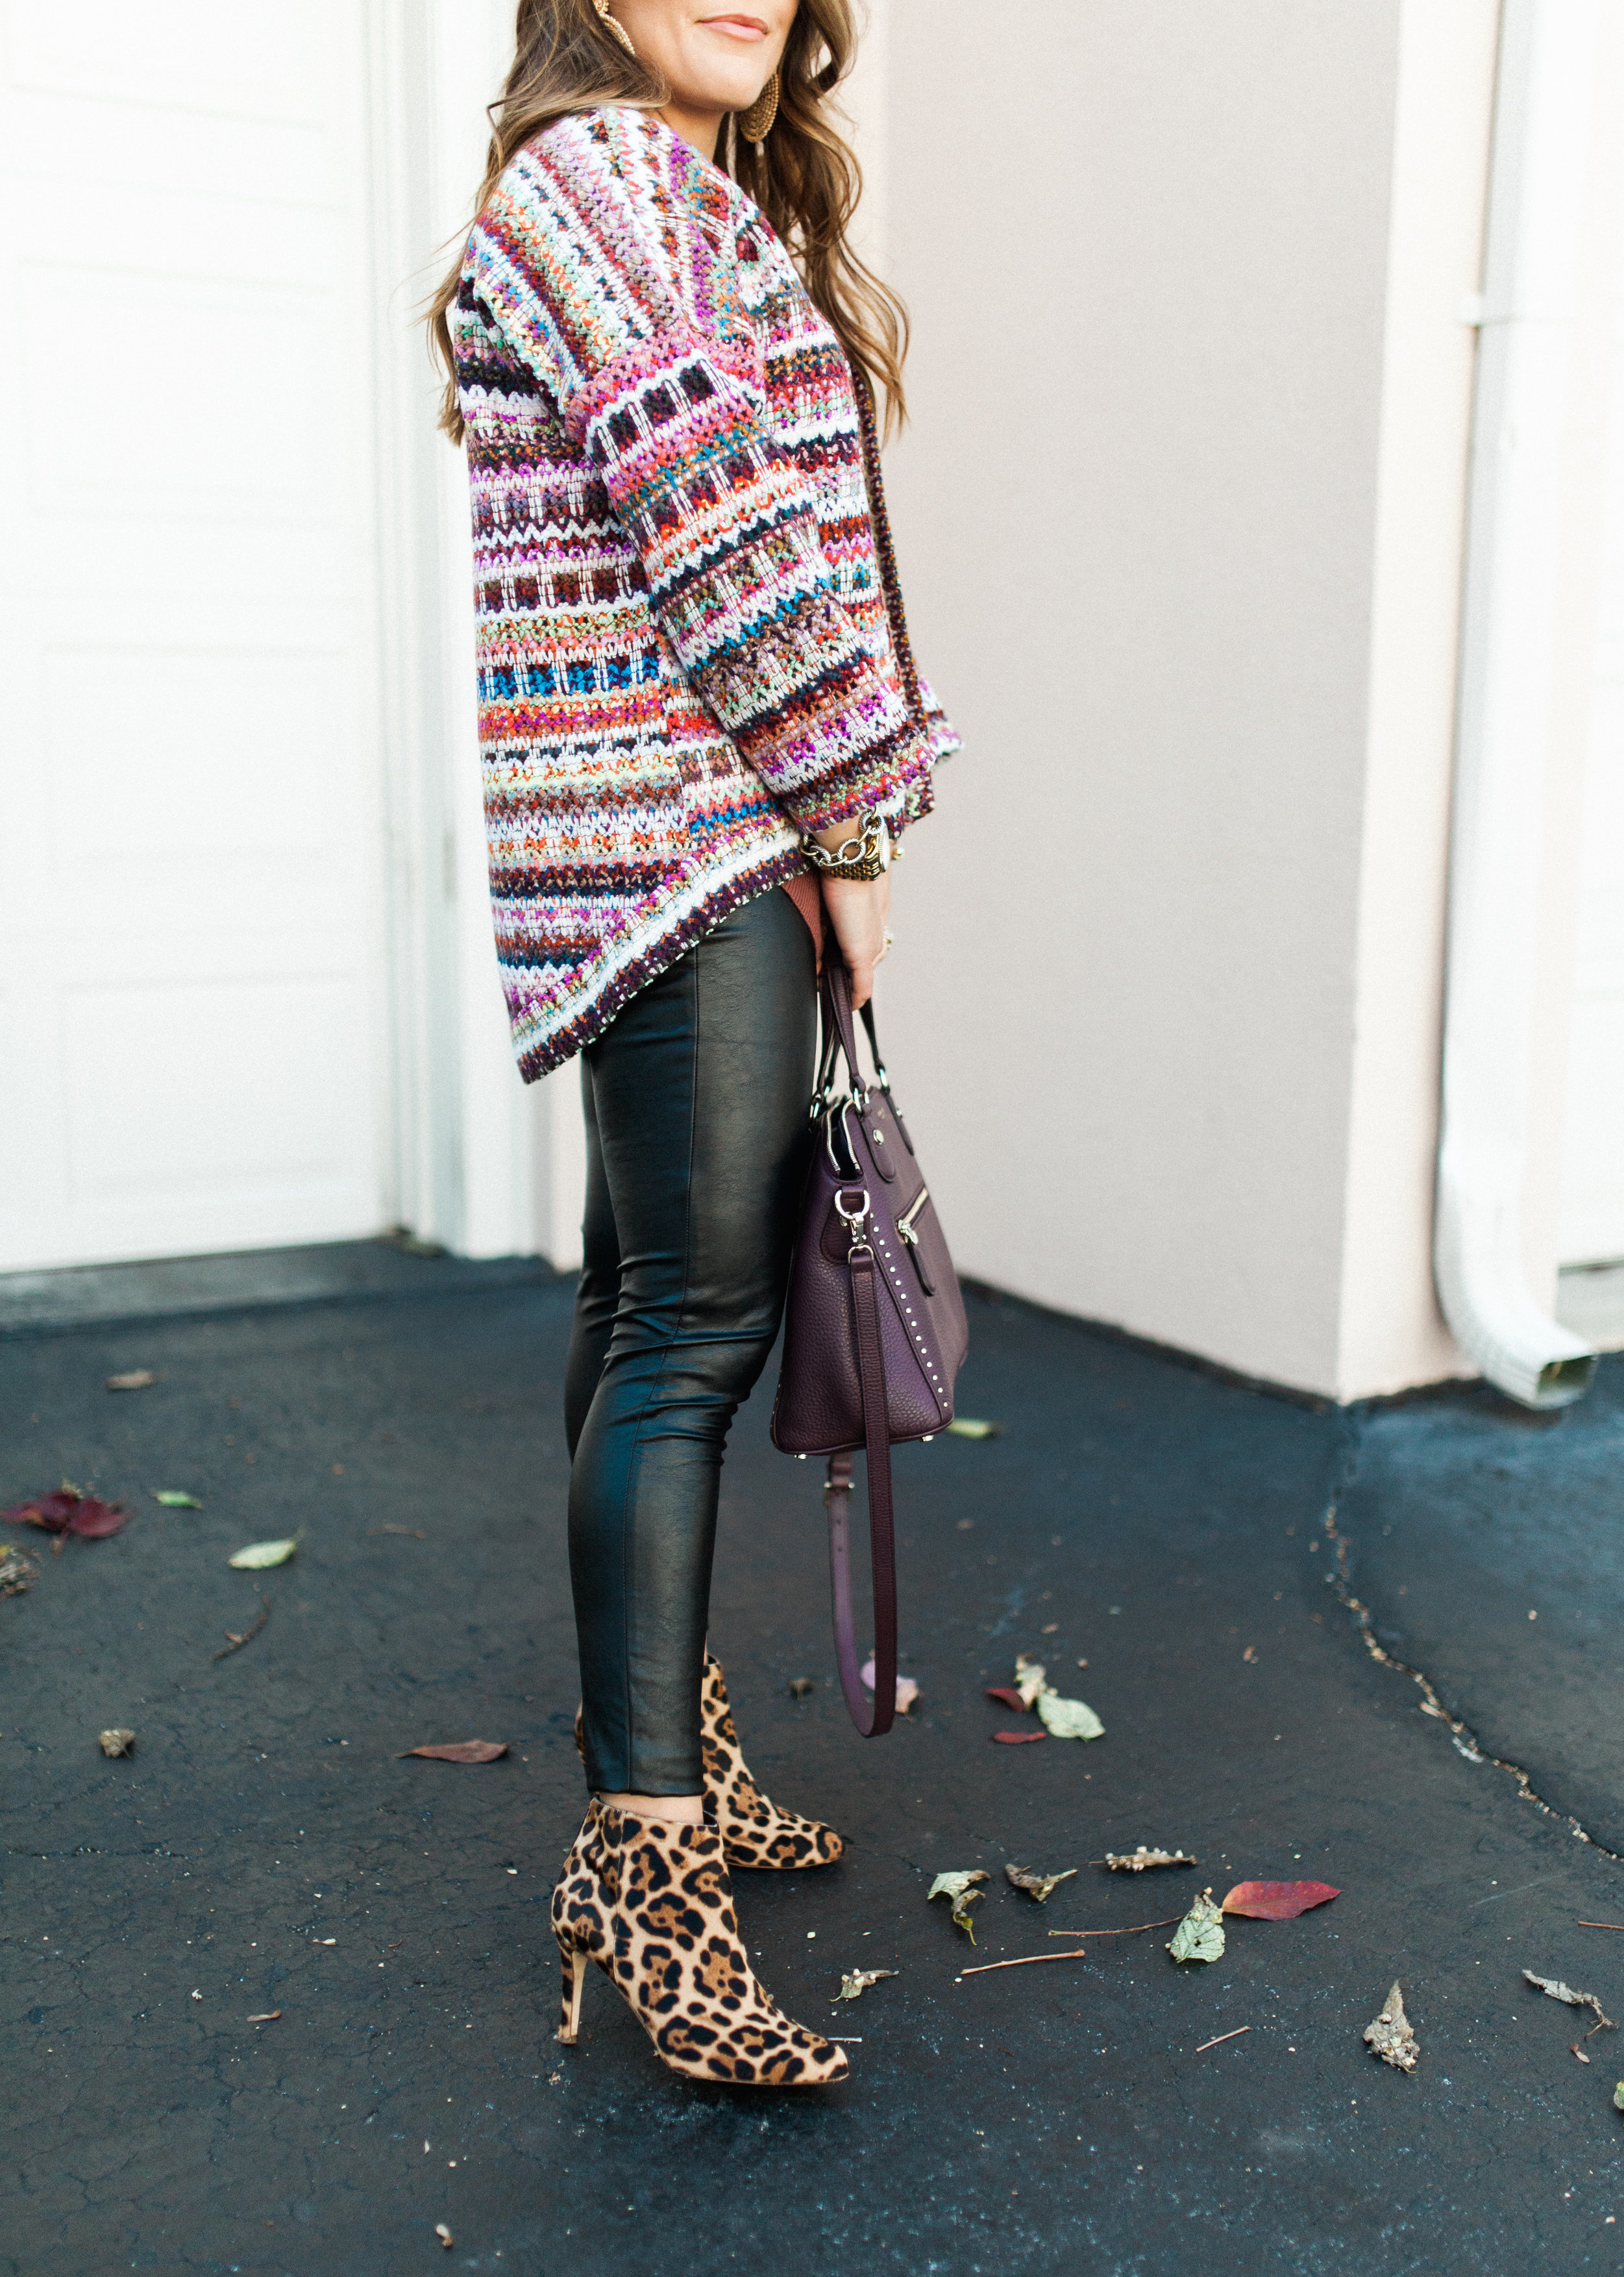 How to wear bright colors for fall